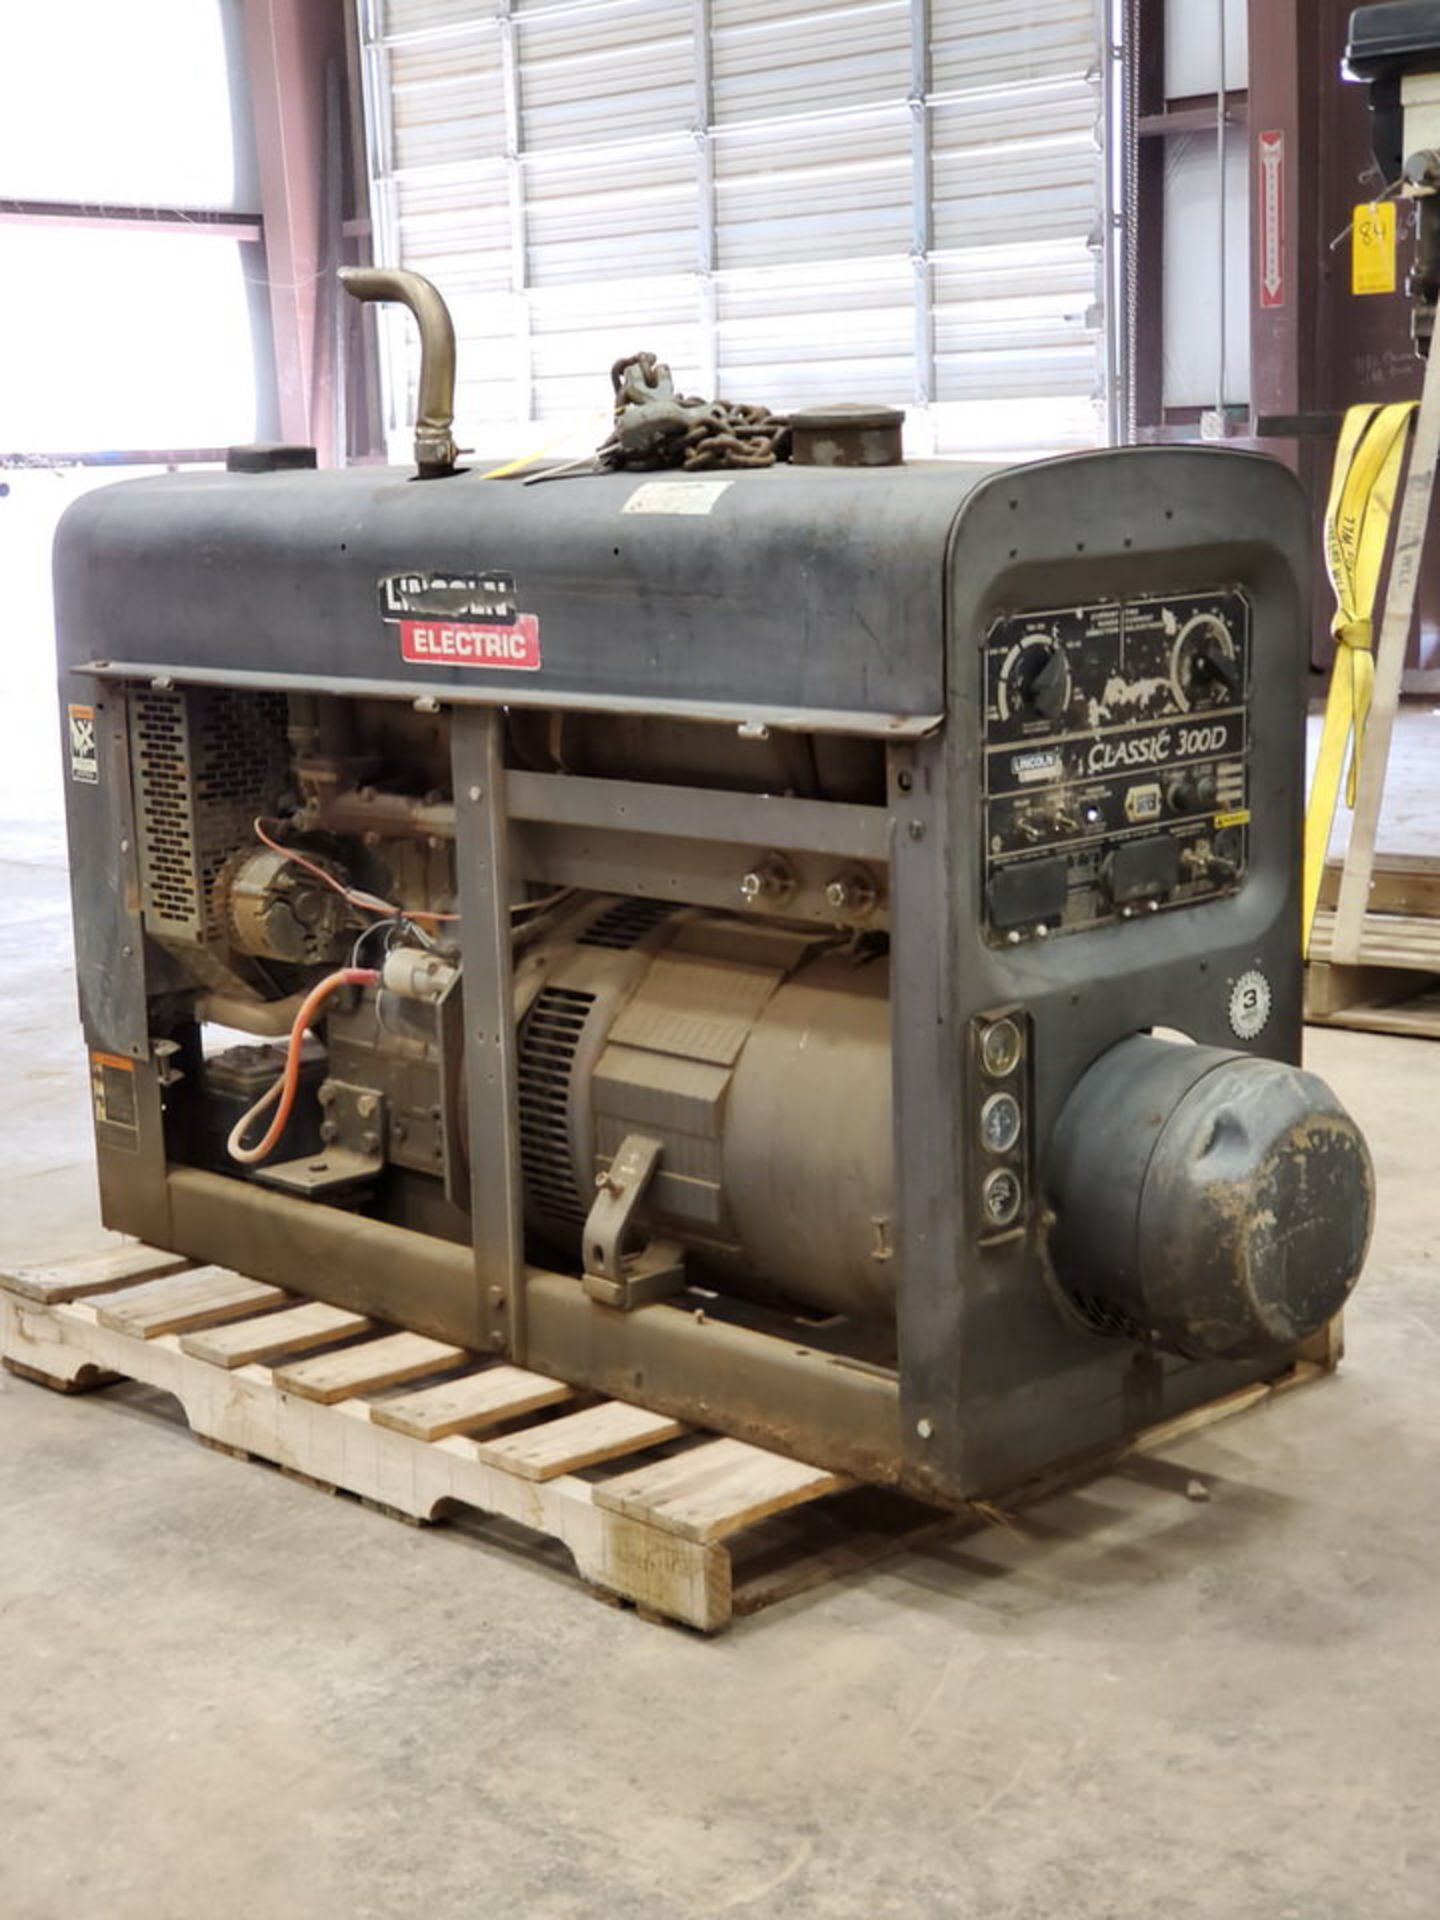 LE Classic 300D Multiprocessing Welder 115/230V, 26/13A; 4 Cyl Kubota Engine, 800RPM - Image 4 of 9